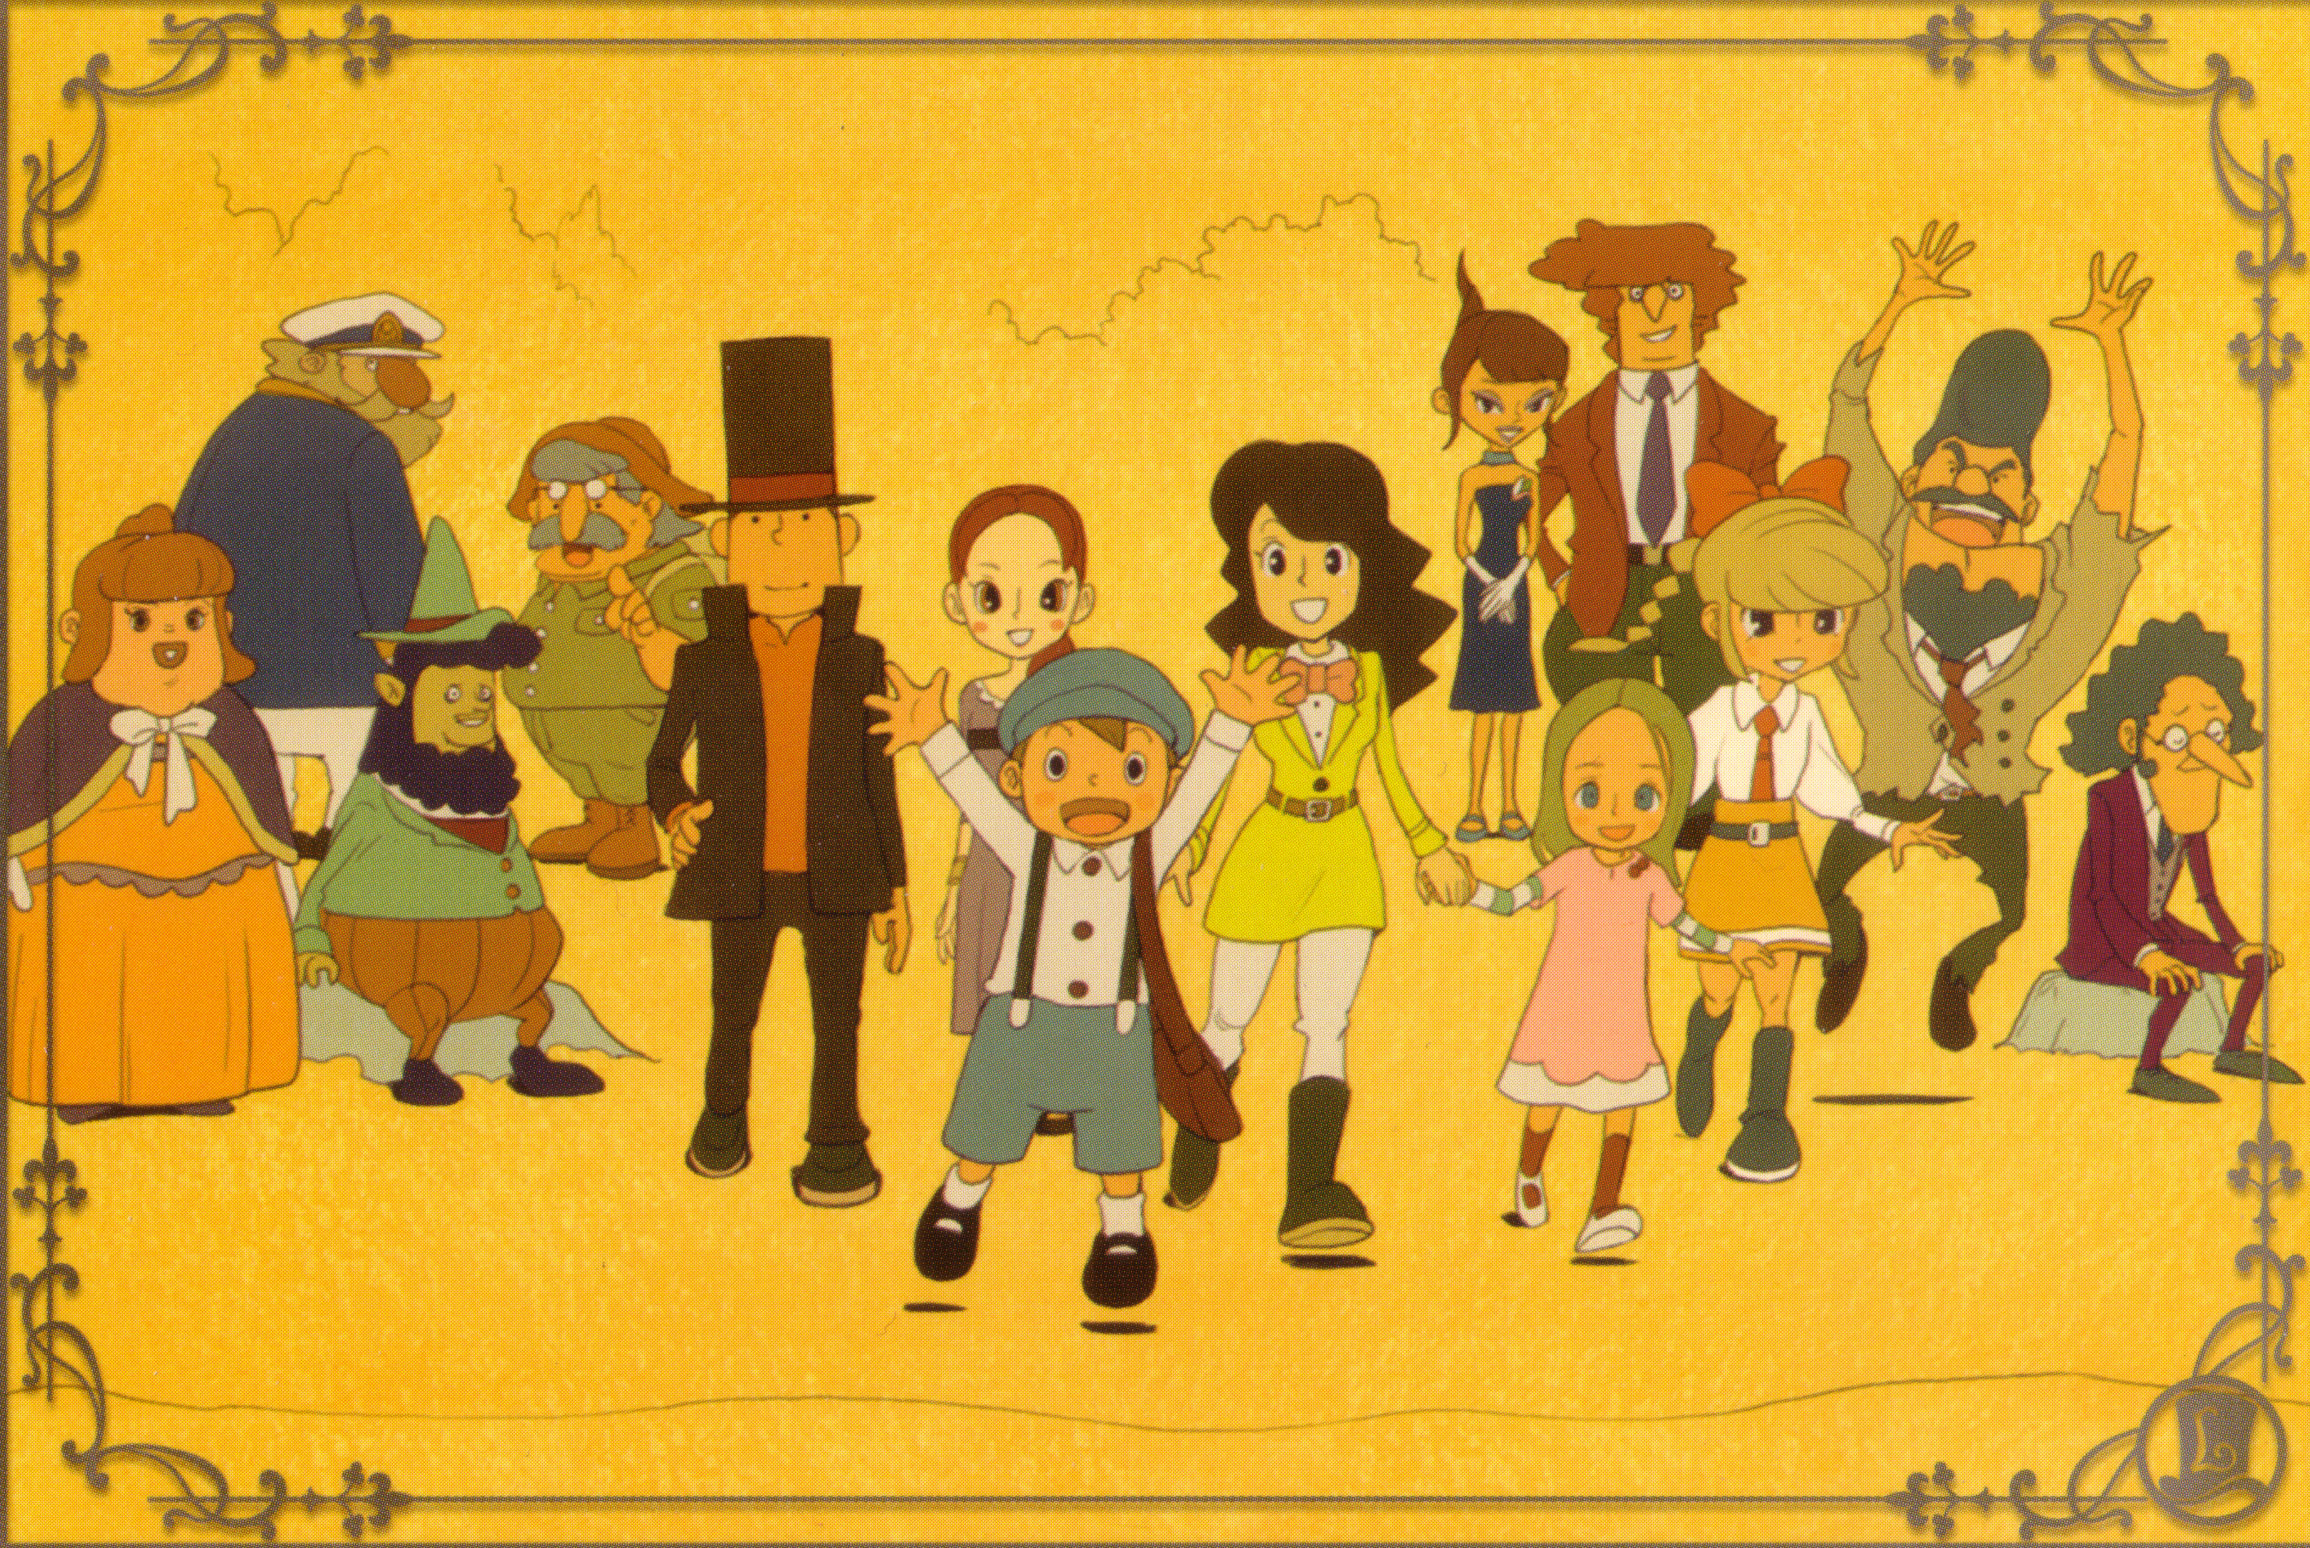 Professor Layton Backgrounds Posted By Sarah Anderson